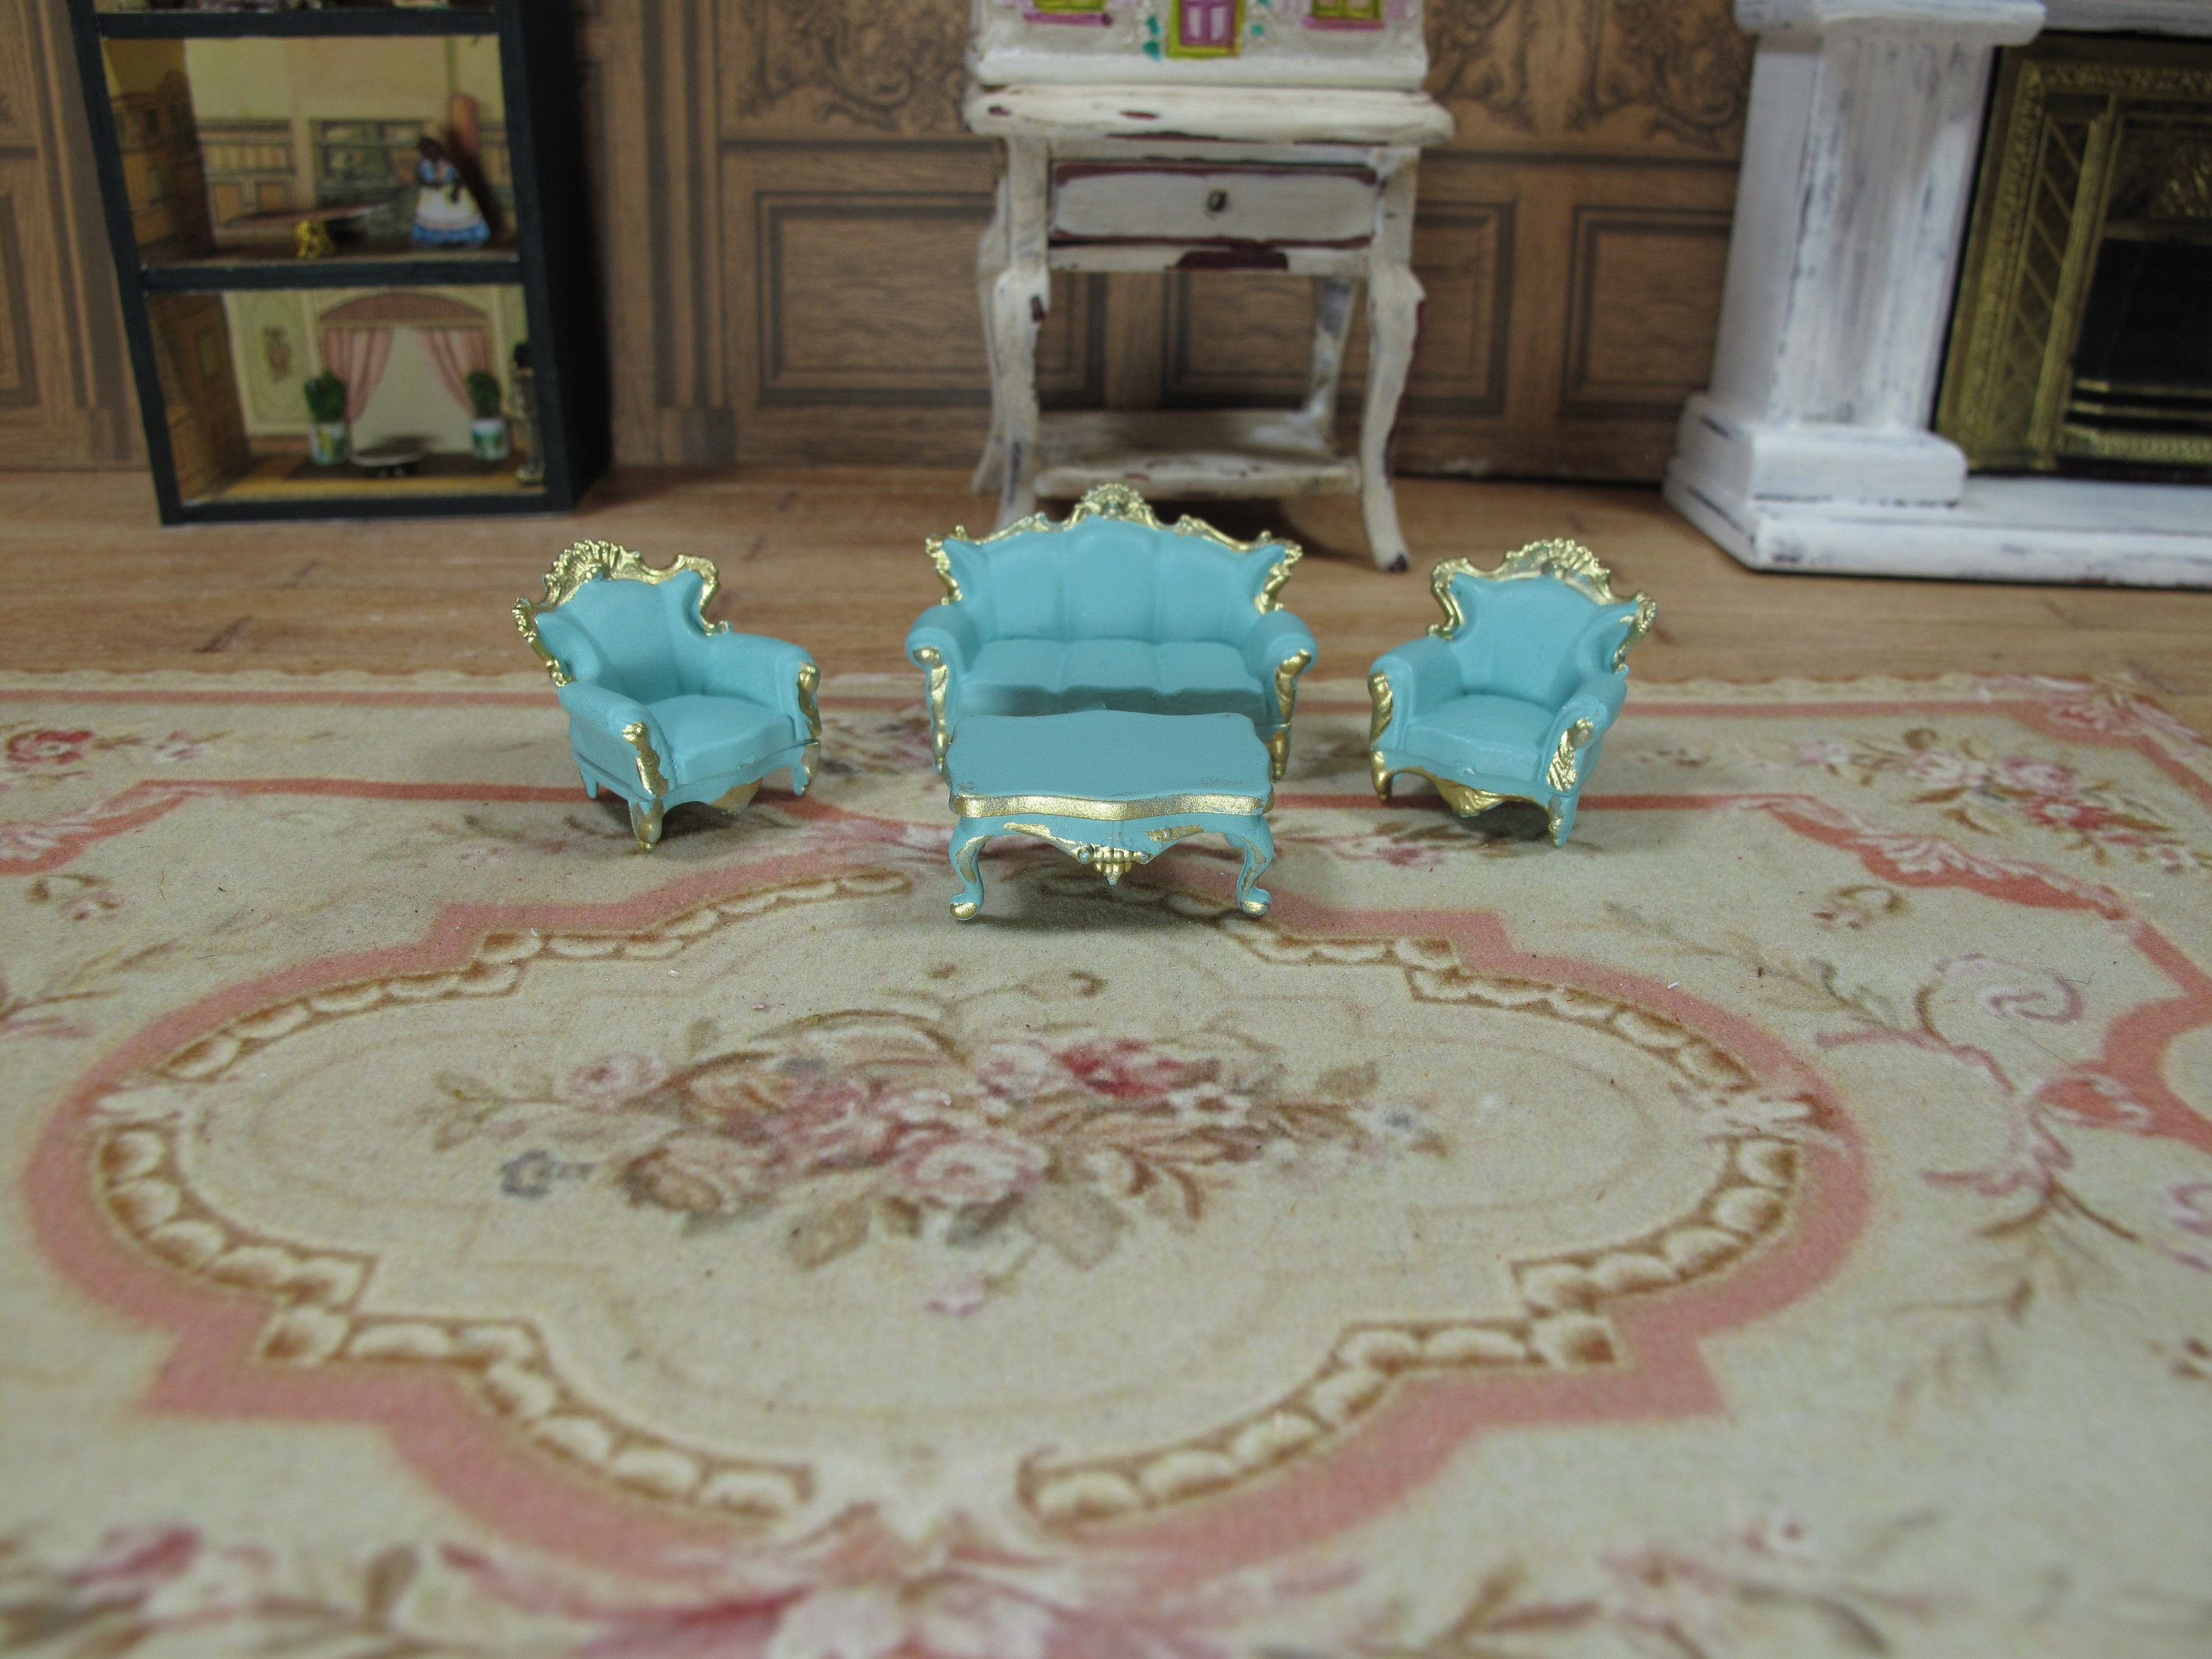 Scale 1 48 Victorian Living Room Set 4 Pcs Sofa 2 Chairs And Table Gold Blue 1 4 1 48 48th 1 48 Quarter Scale Furniture For Dollhouse